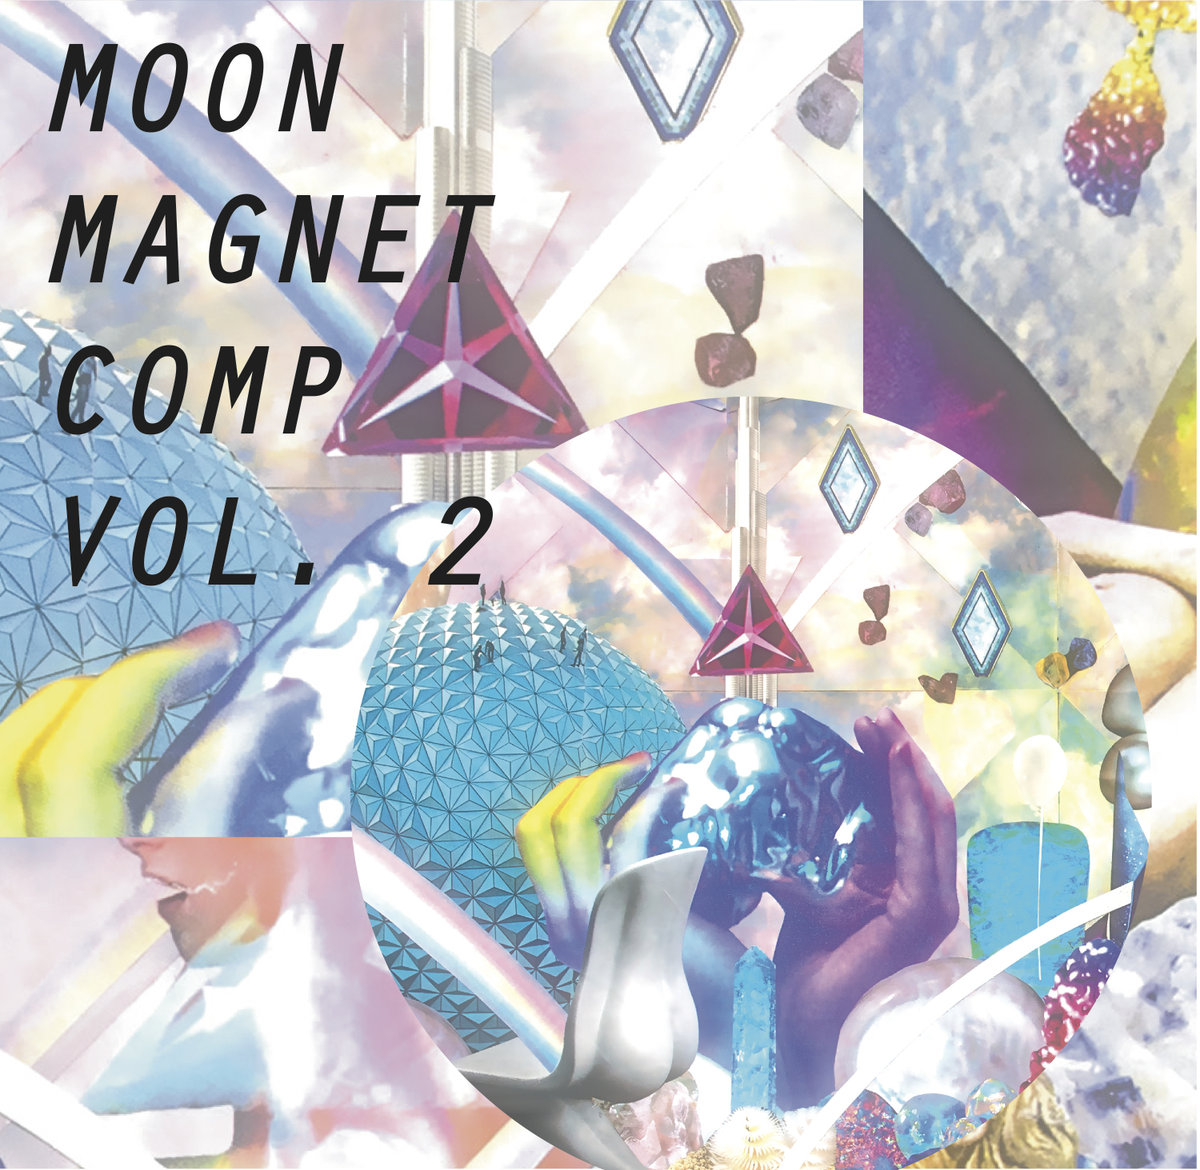 Moon Magnet Comp Vol. 2